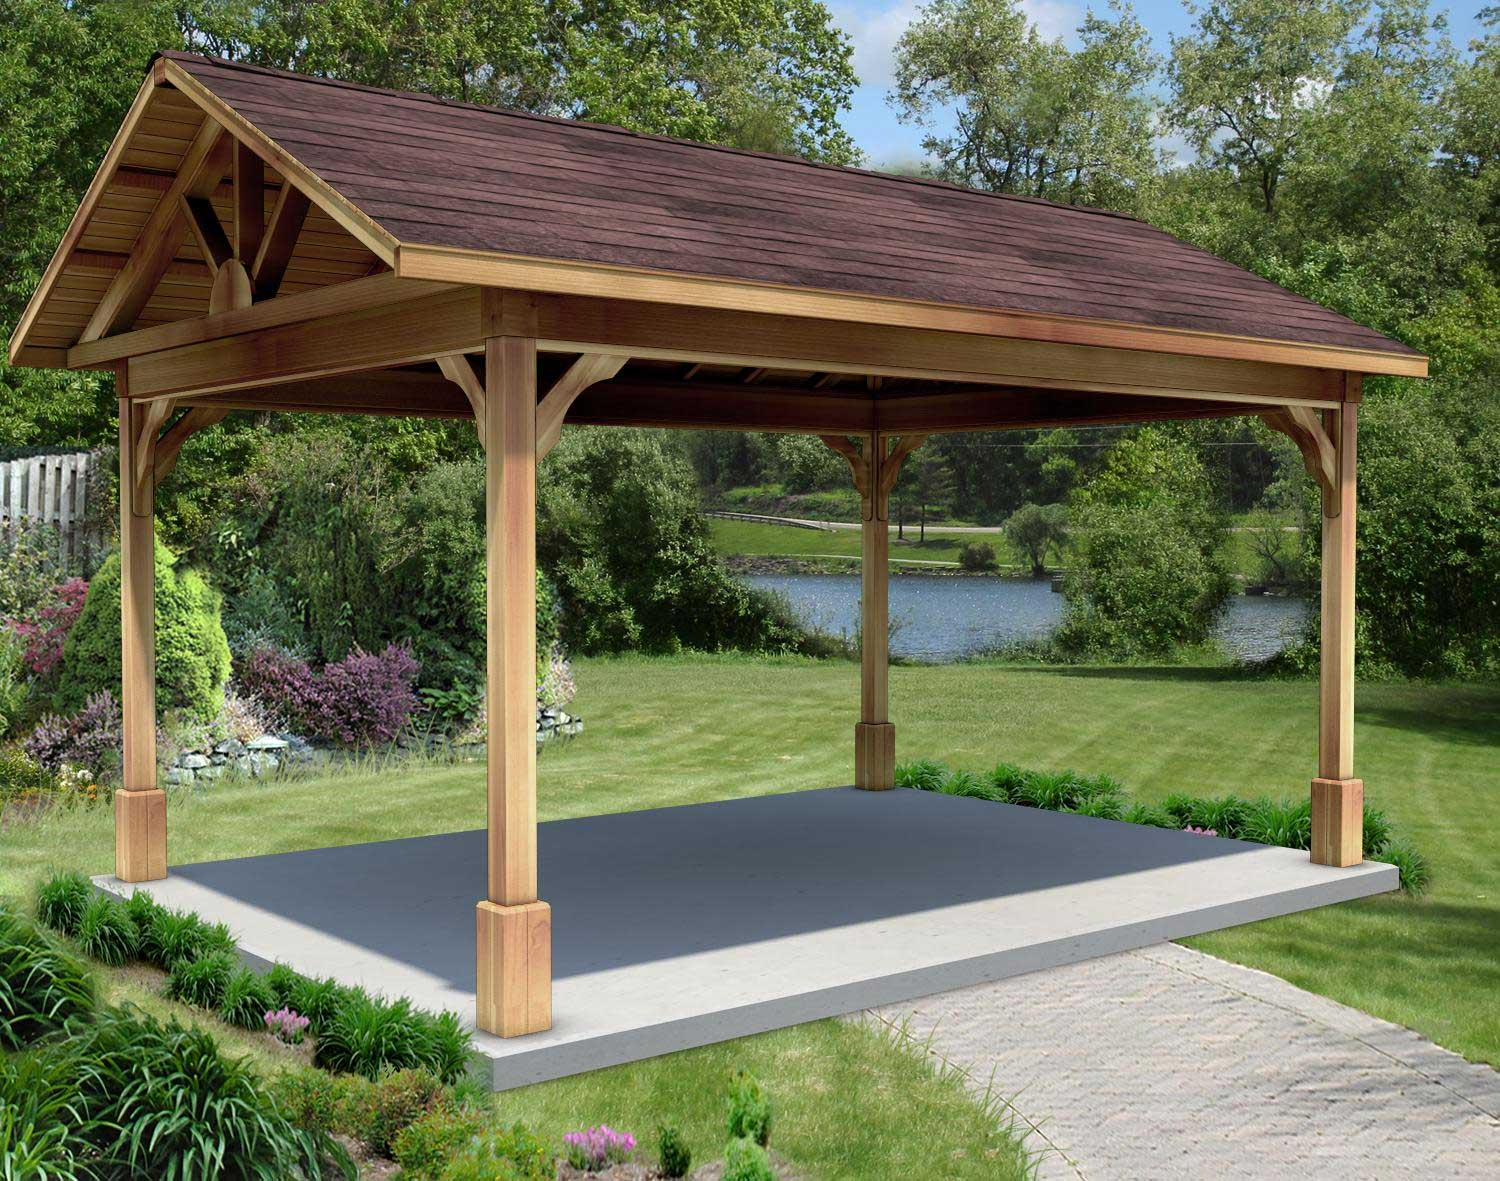 Red Cedar Gable Roof Open Rectangle Gazebos With 612 Roof